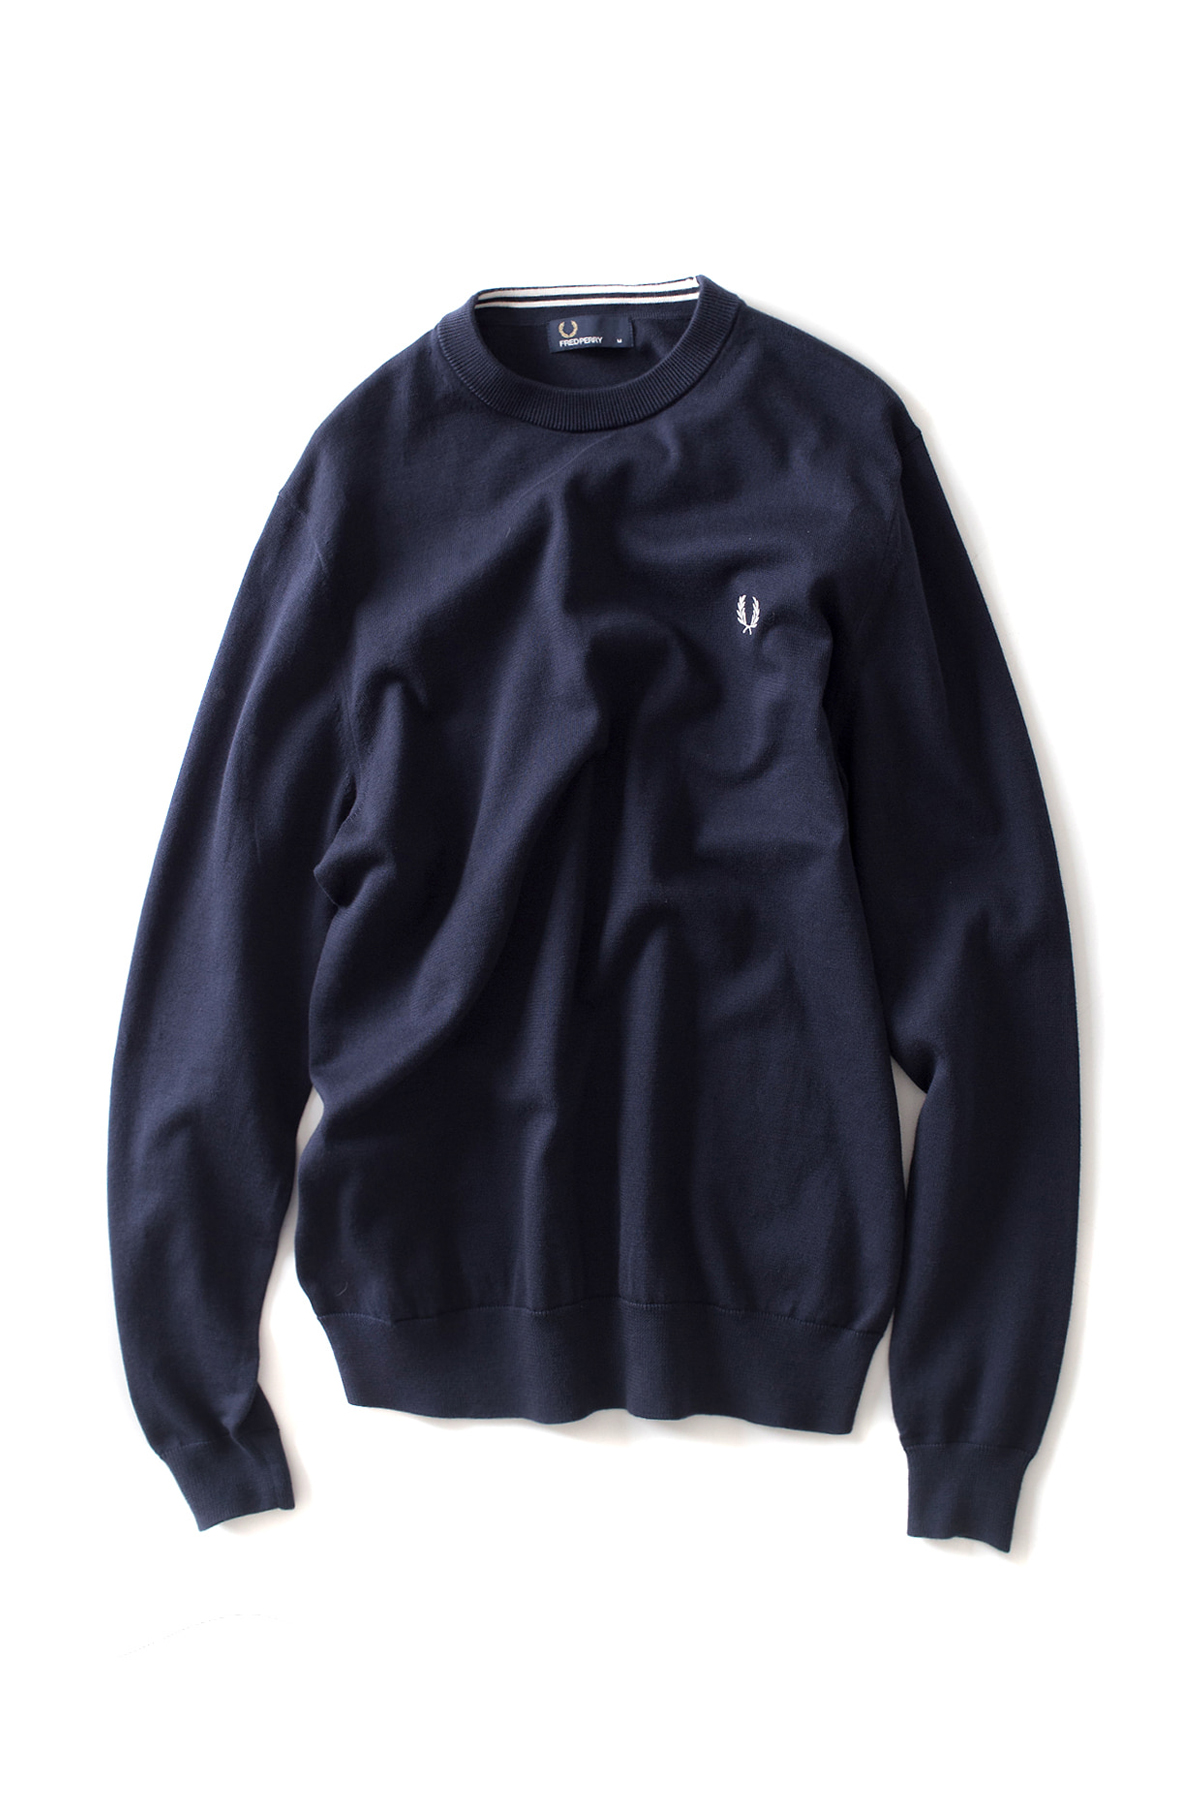 FRED PERRY : Classic Crew Neck Sweater (Dark Carbon)